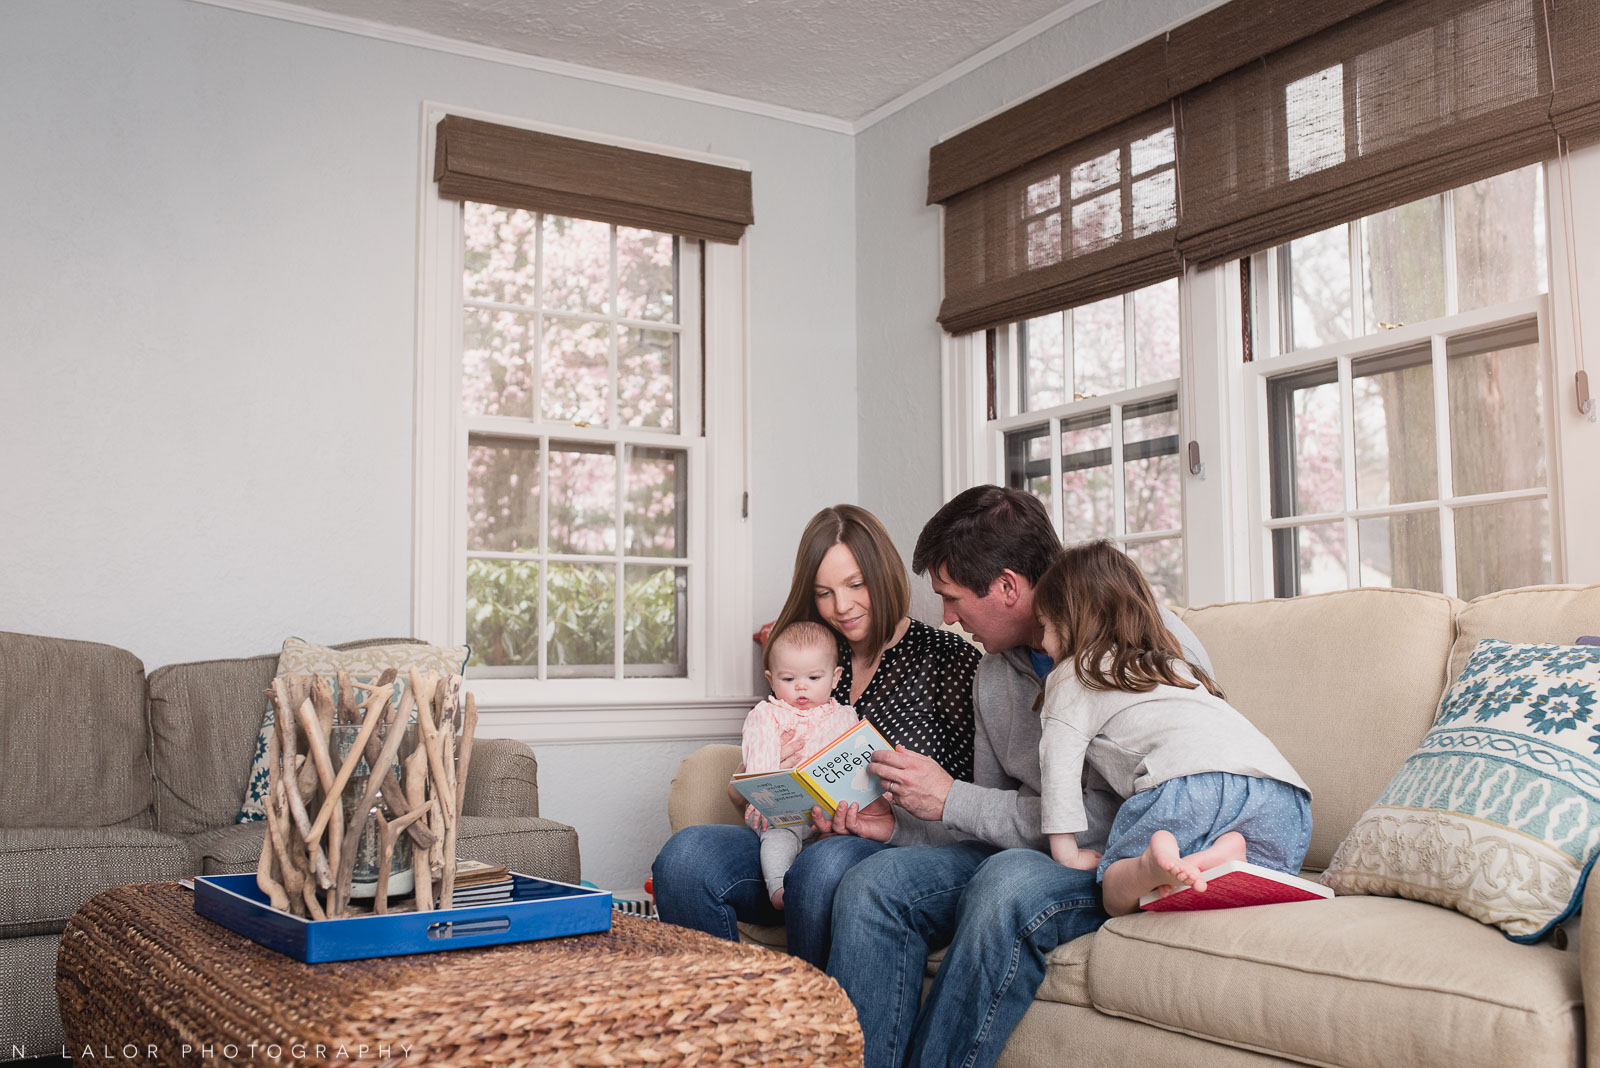 The family reading together in the Living Room. Lifestyle documentary portrait by N. Lalor Photography. Greenwich, Connecticut.